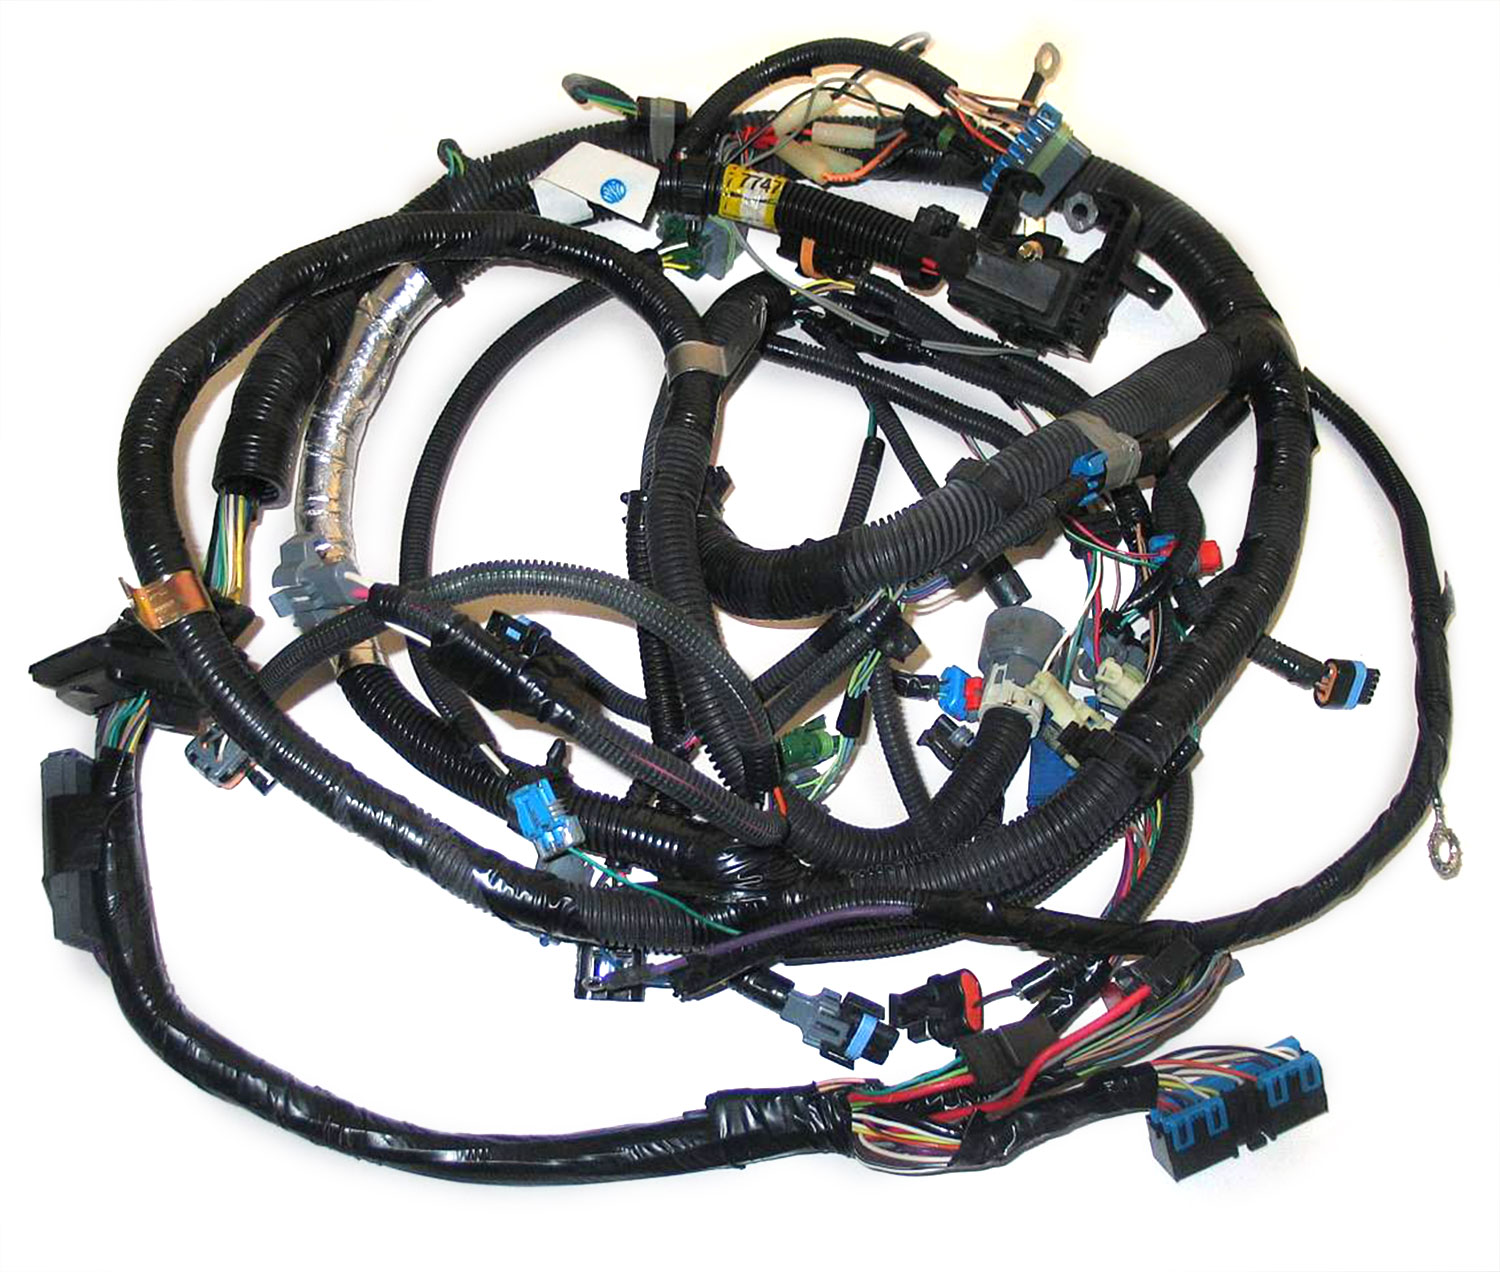 12167747 OEM TBI Engine Wire Harness for 5.0L 305 & 5.7L 350 GM Engines ~  Auto Parts OnlineParts Highway